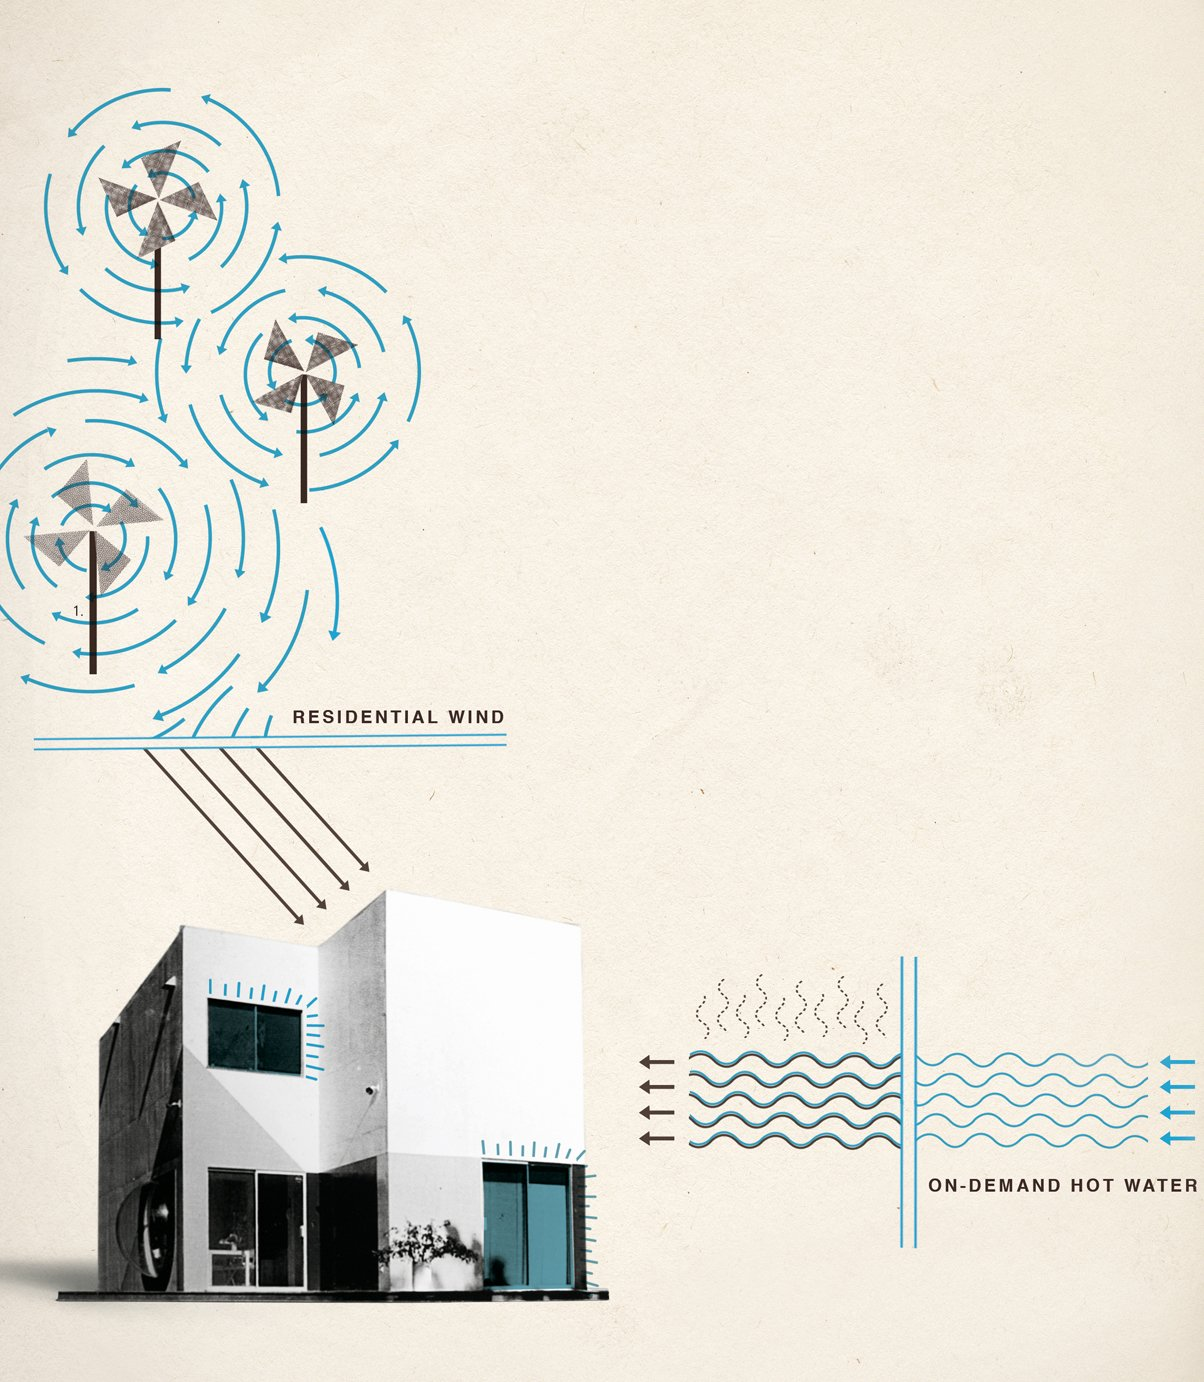 101 Alternative Energy: Gusty Thoughts and Tankless Tasks